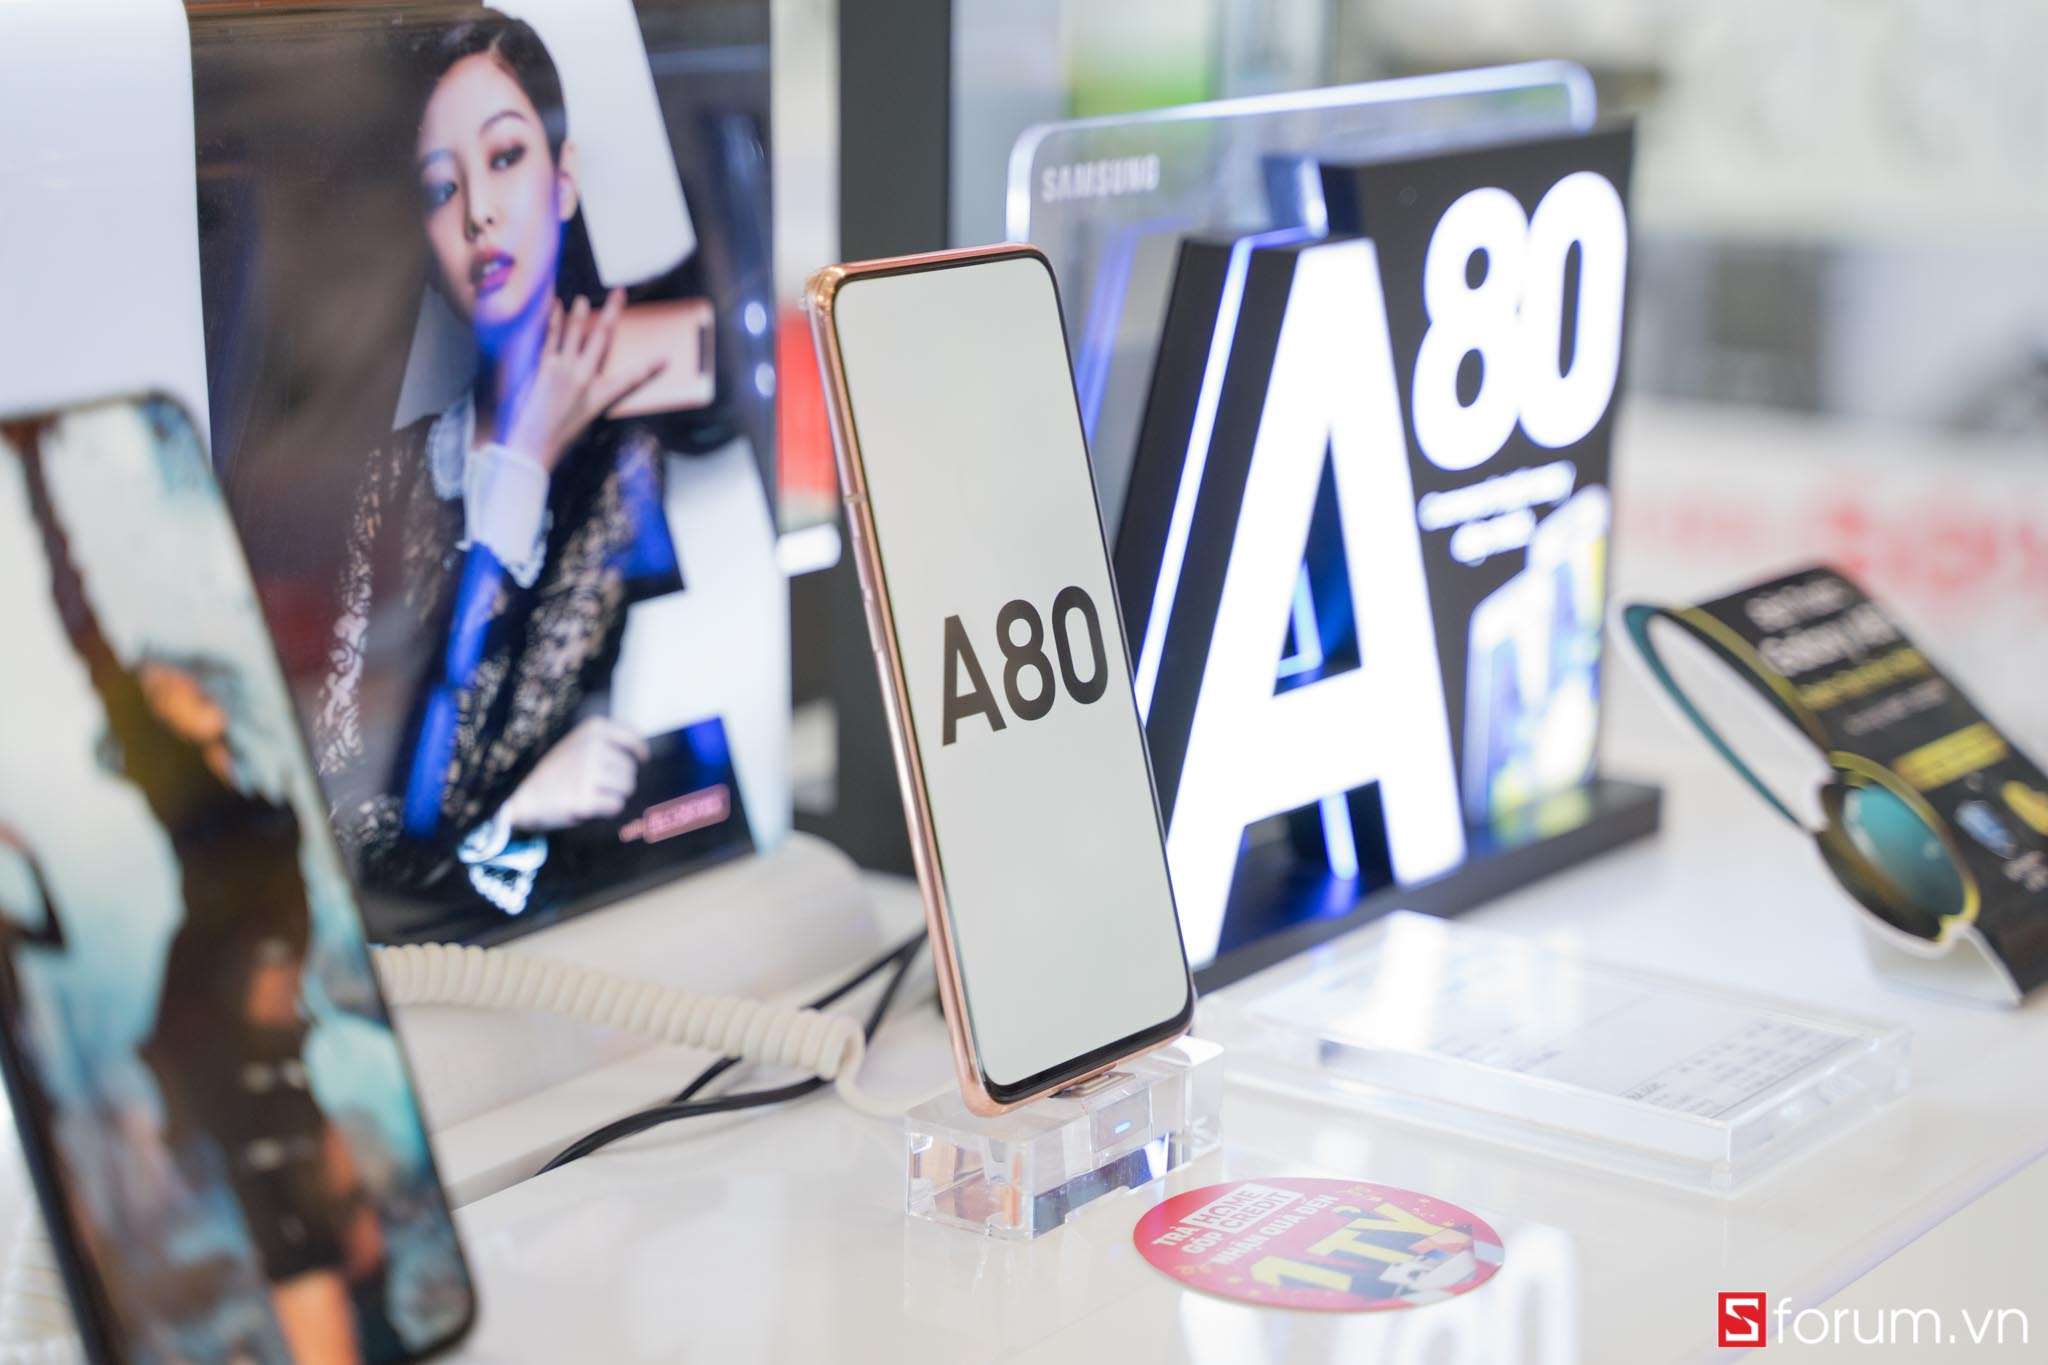 Sforum - Latest technology information page samsung-galaxy-a80-1-of-8 Galaxy A80 has been on display at CellphoneS, inviting you to experience products